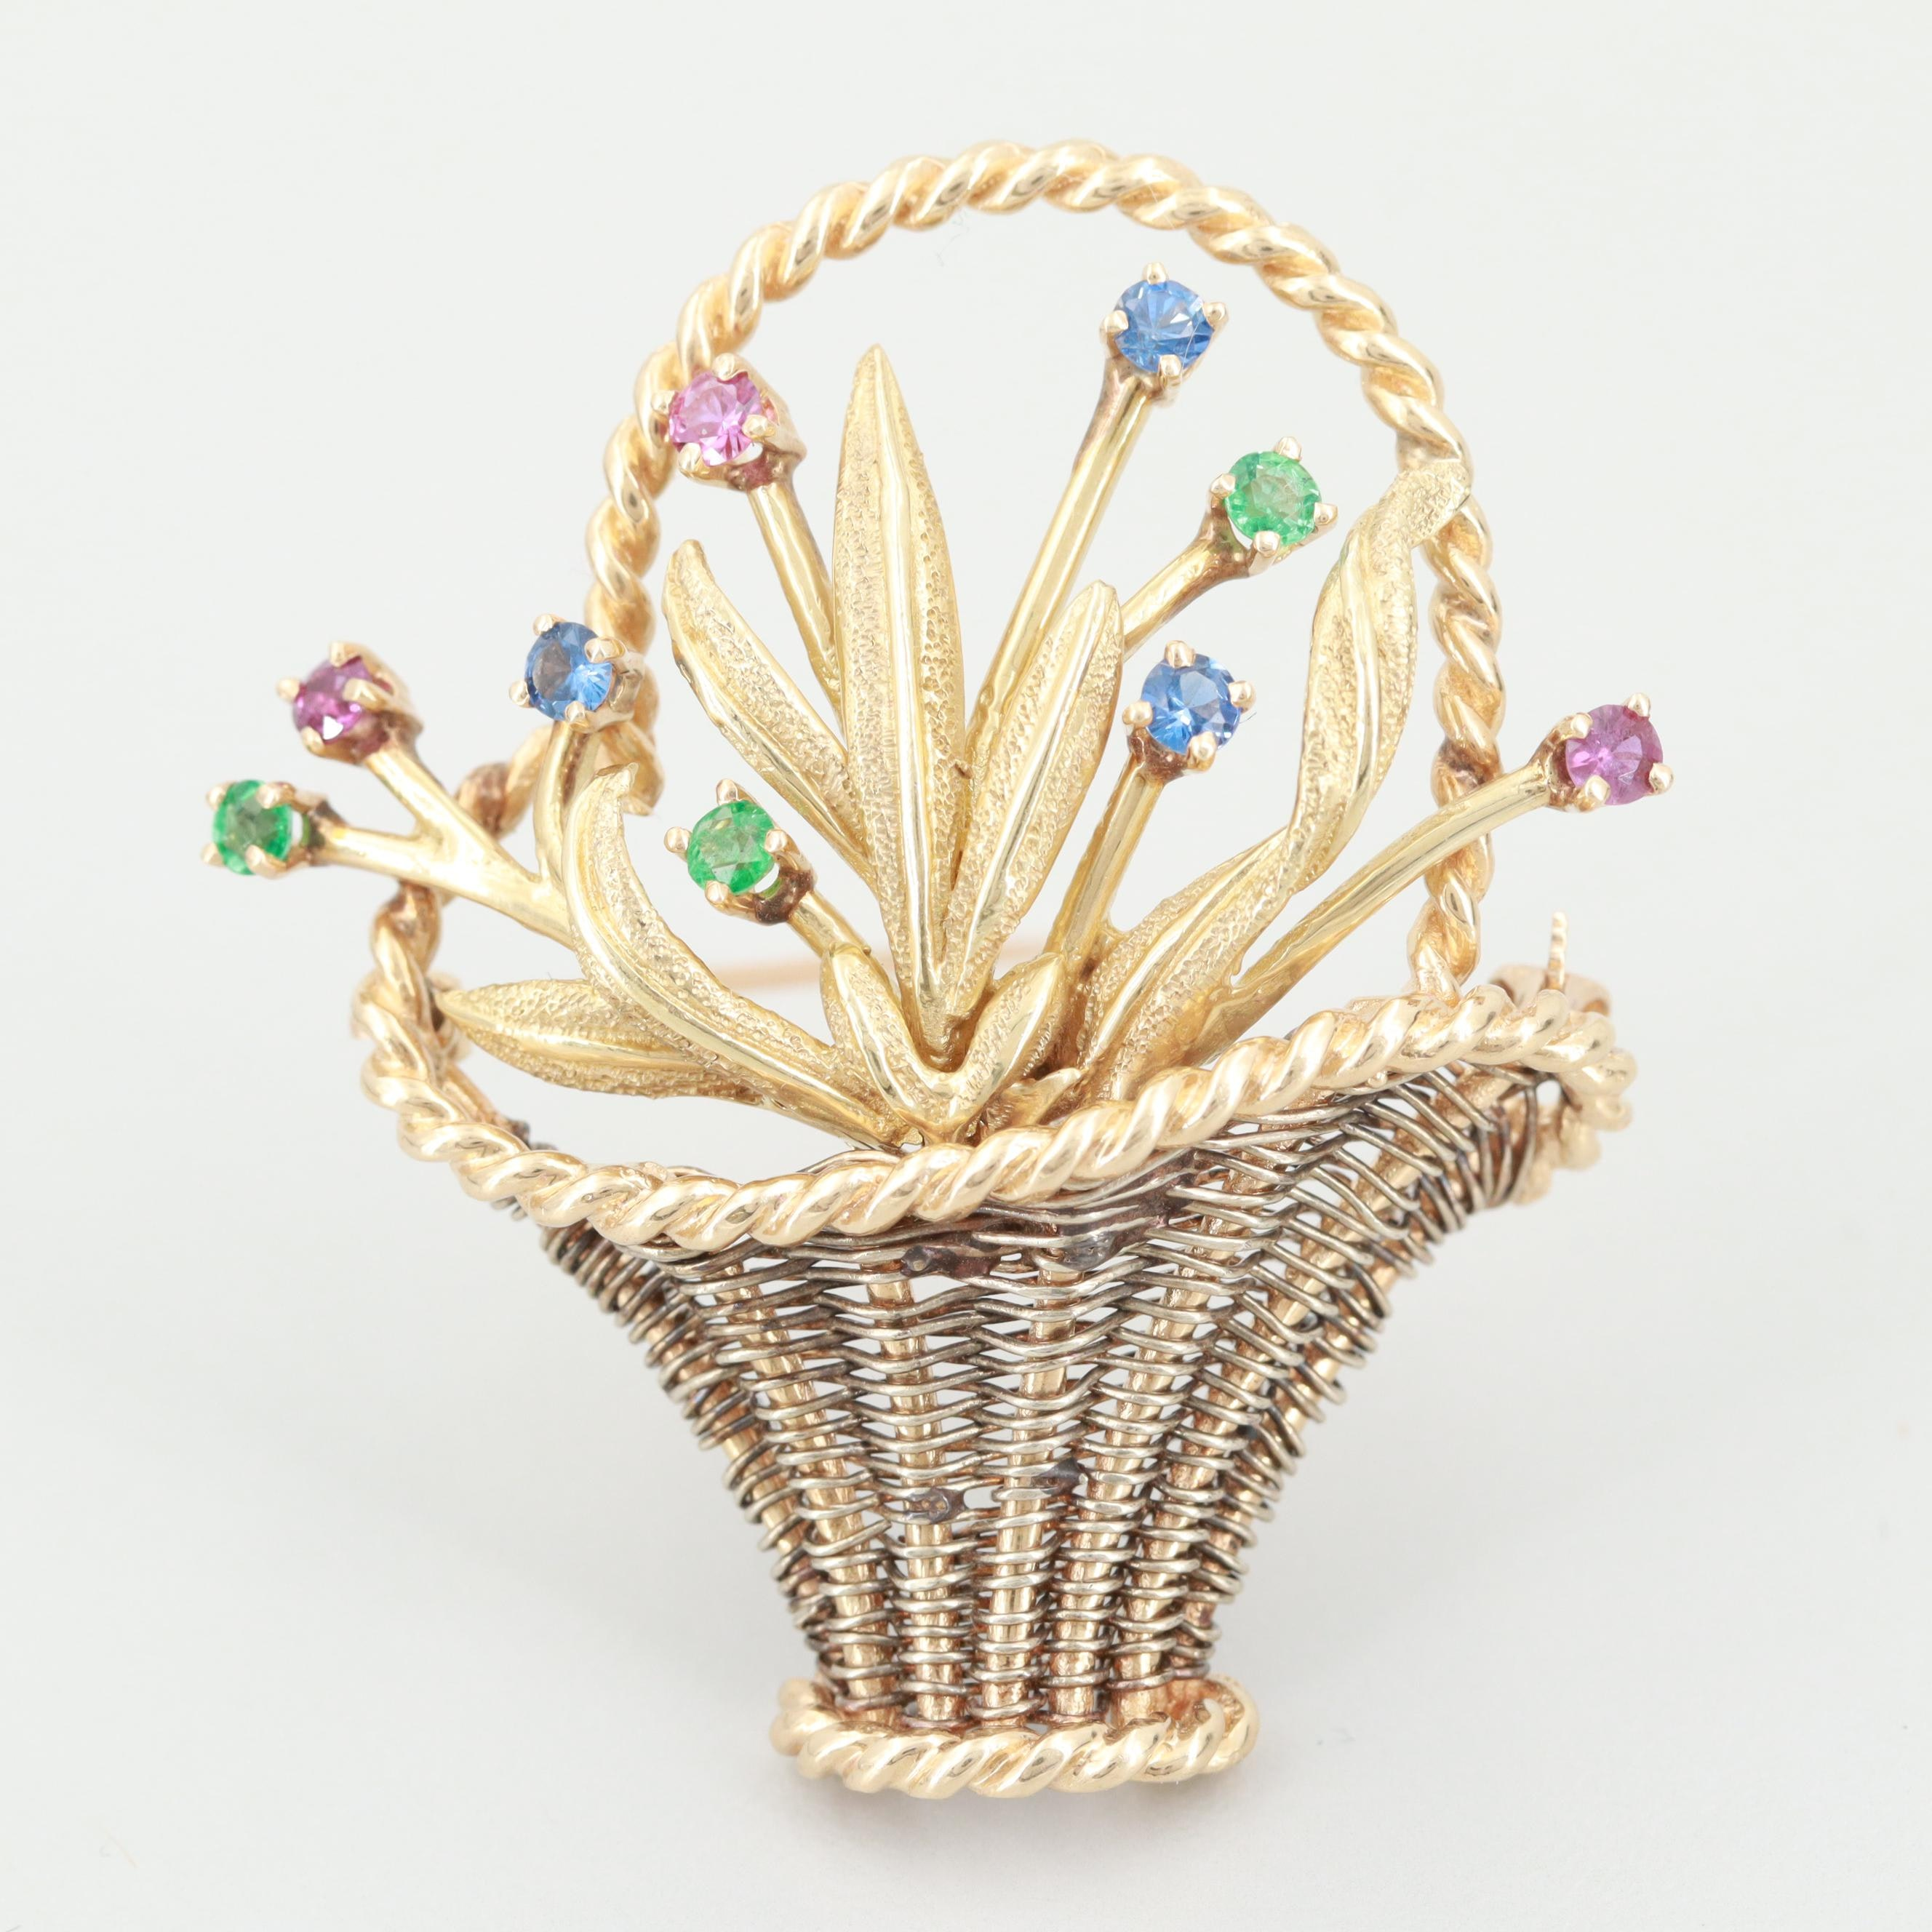 14K Yellow Gold Ruby, Emerald, and Blue Sapphire Gardinetto Brooch